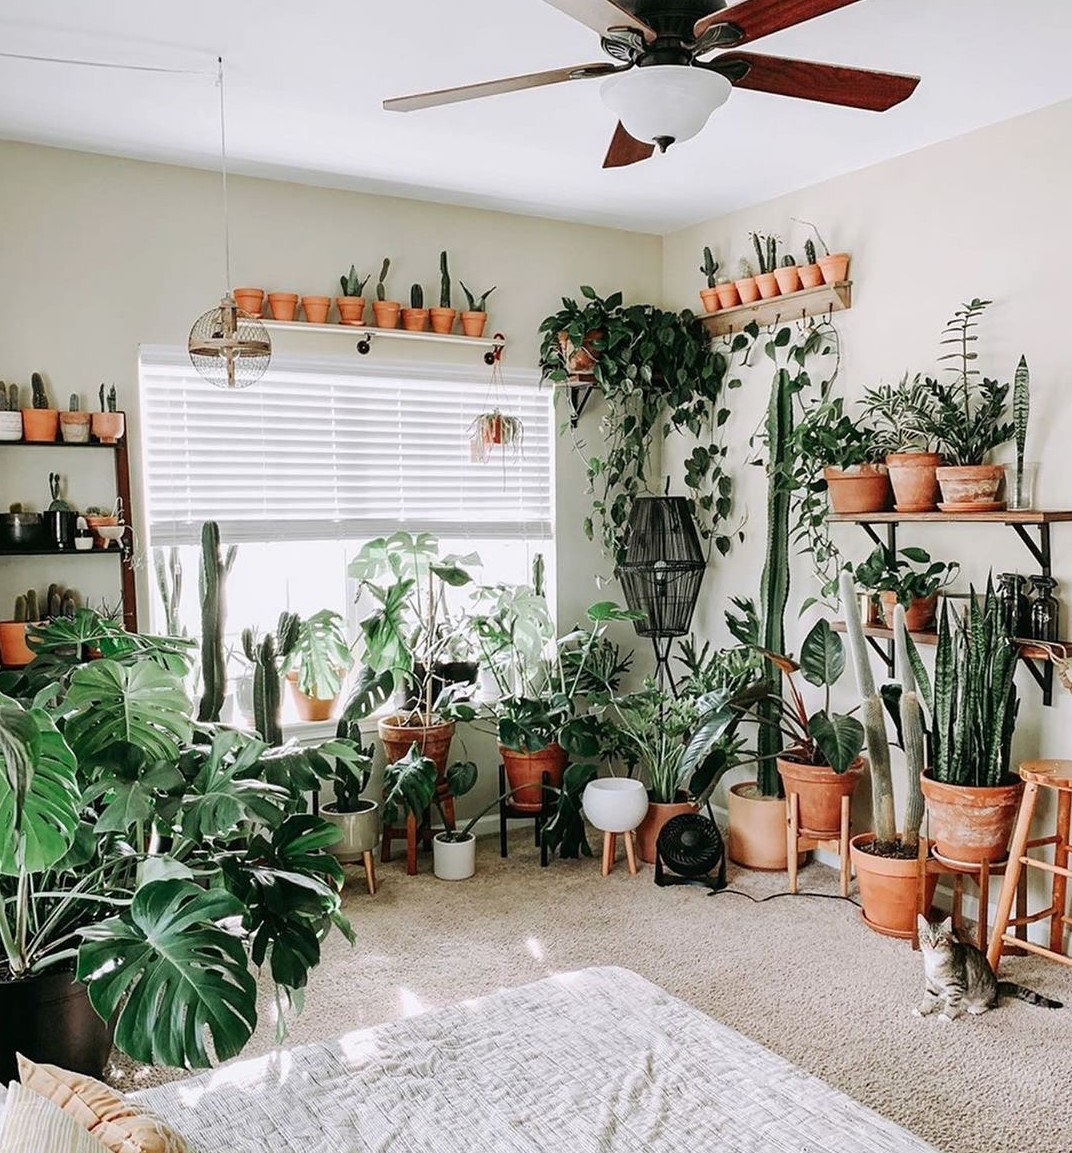 Special Room for Ornamental Plants